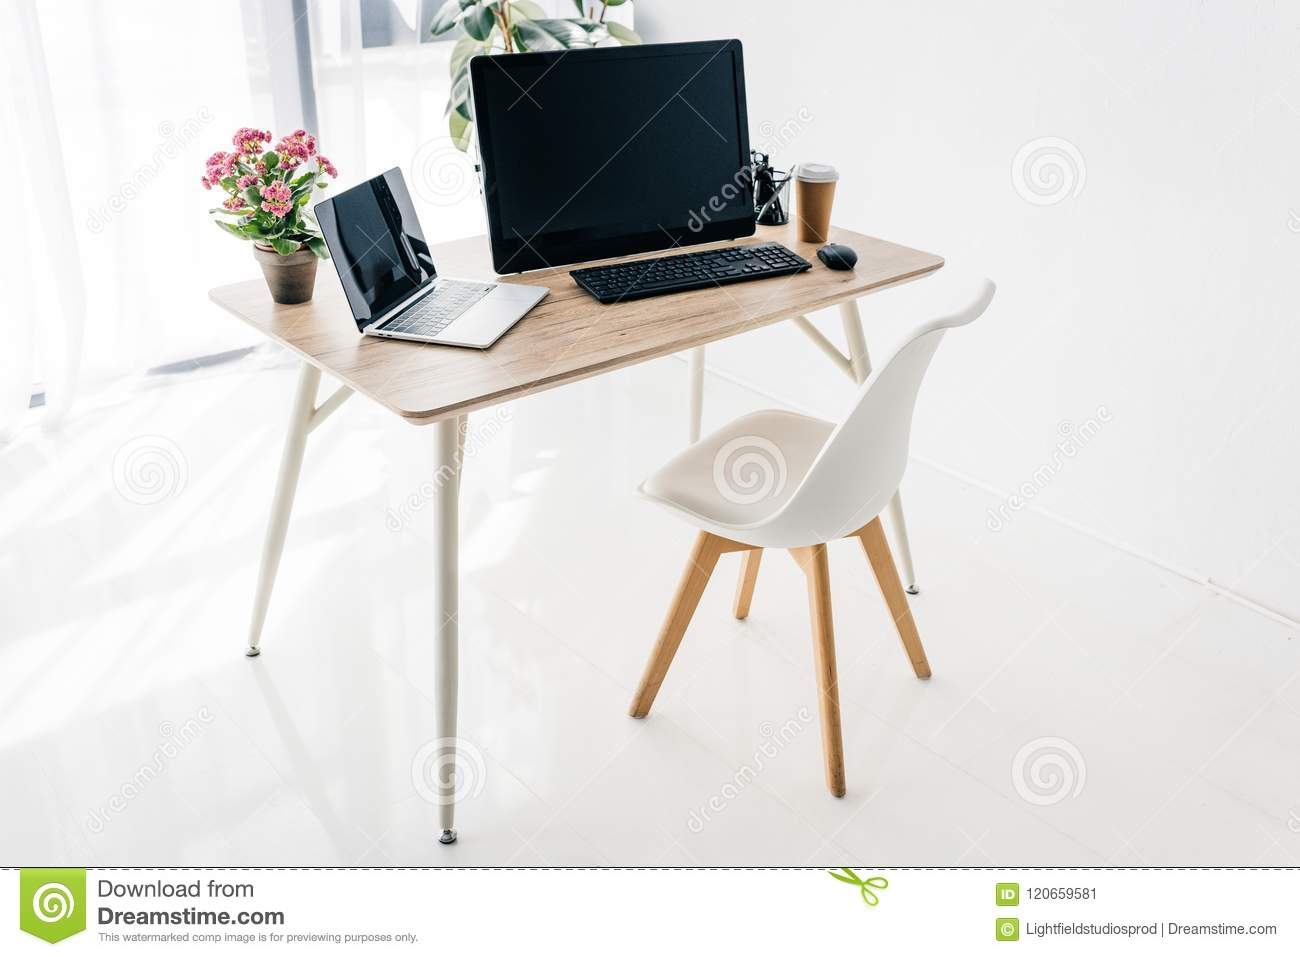 interior of workplace with chair, flowers, coffee, stationery, laptop and computer